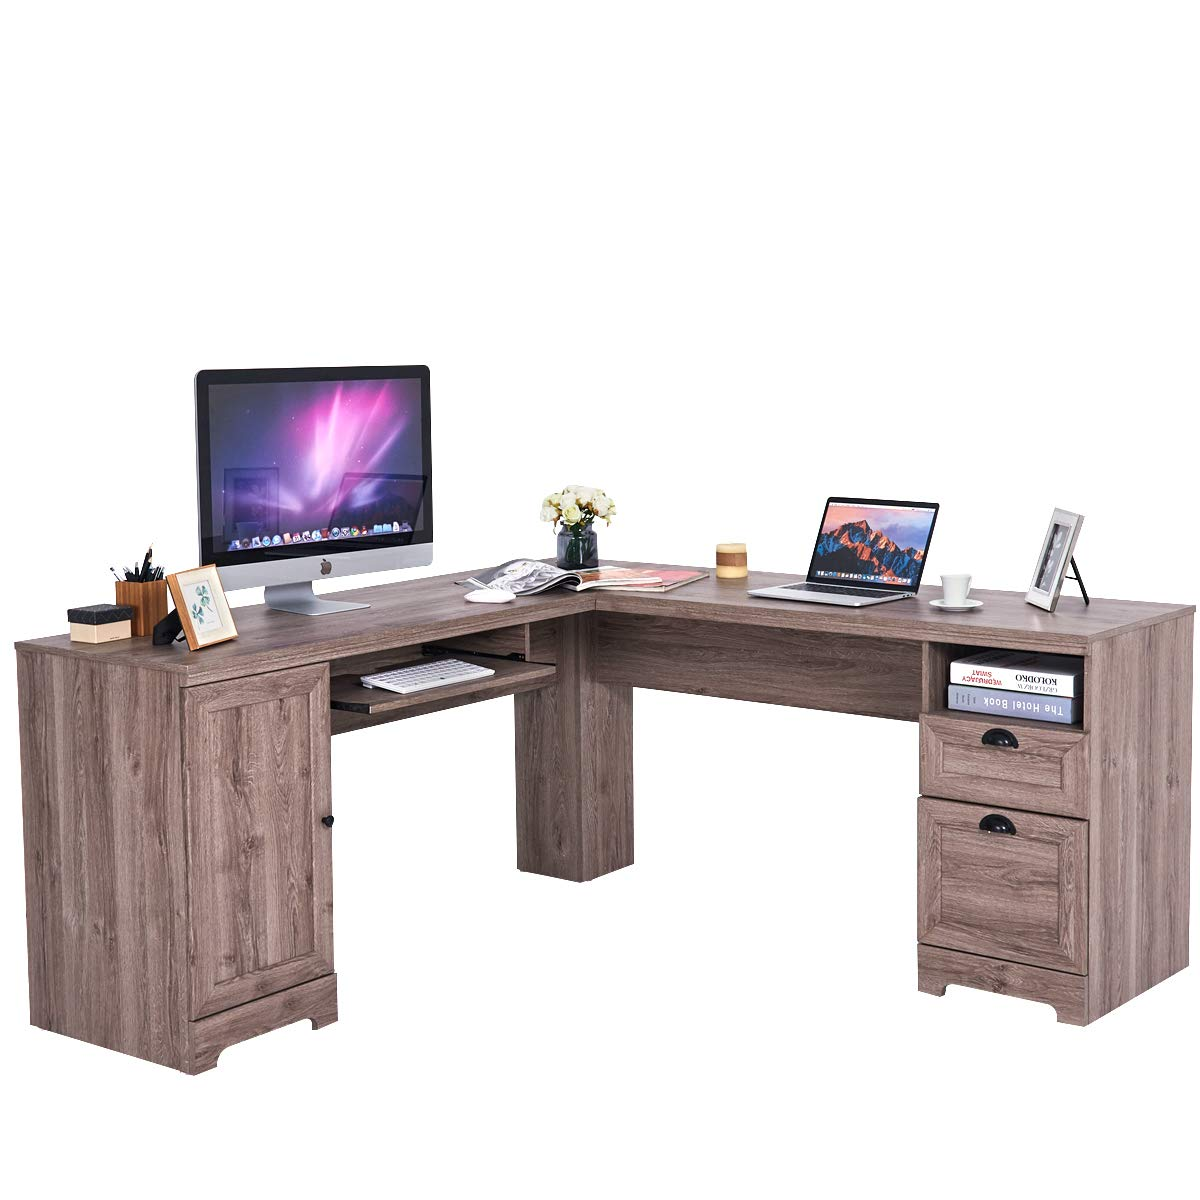 Tangkula L-Shaped Desk Corner Computer Desk, with Drawers and Storage Shelf, Home Office Desk, Sturdy and Space-Saving Writing Table, Wood Grain 66'' × 66'' × 30''(LxW×H) (Gray)